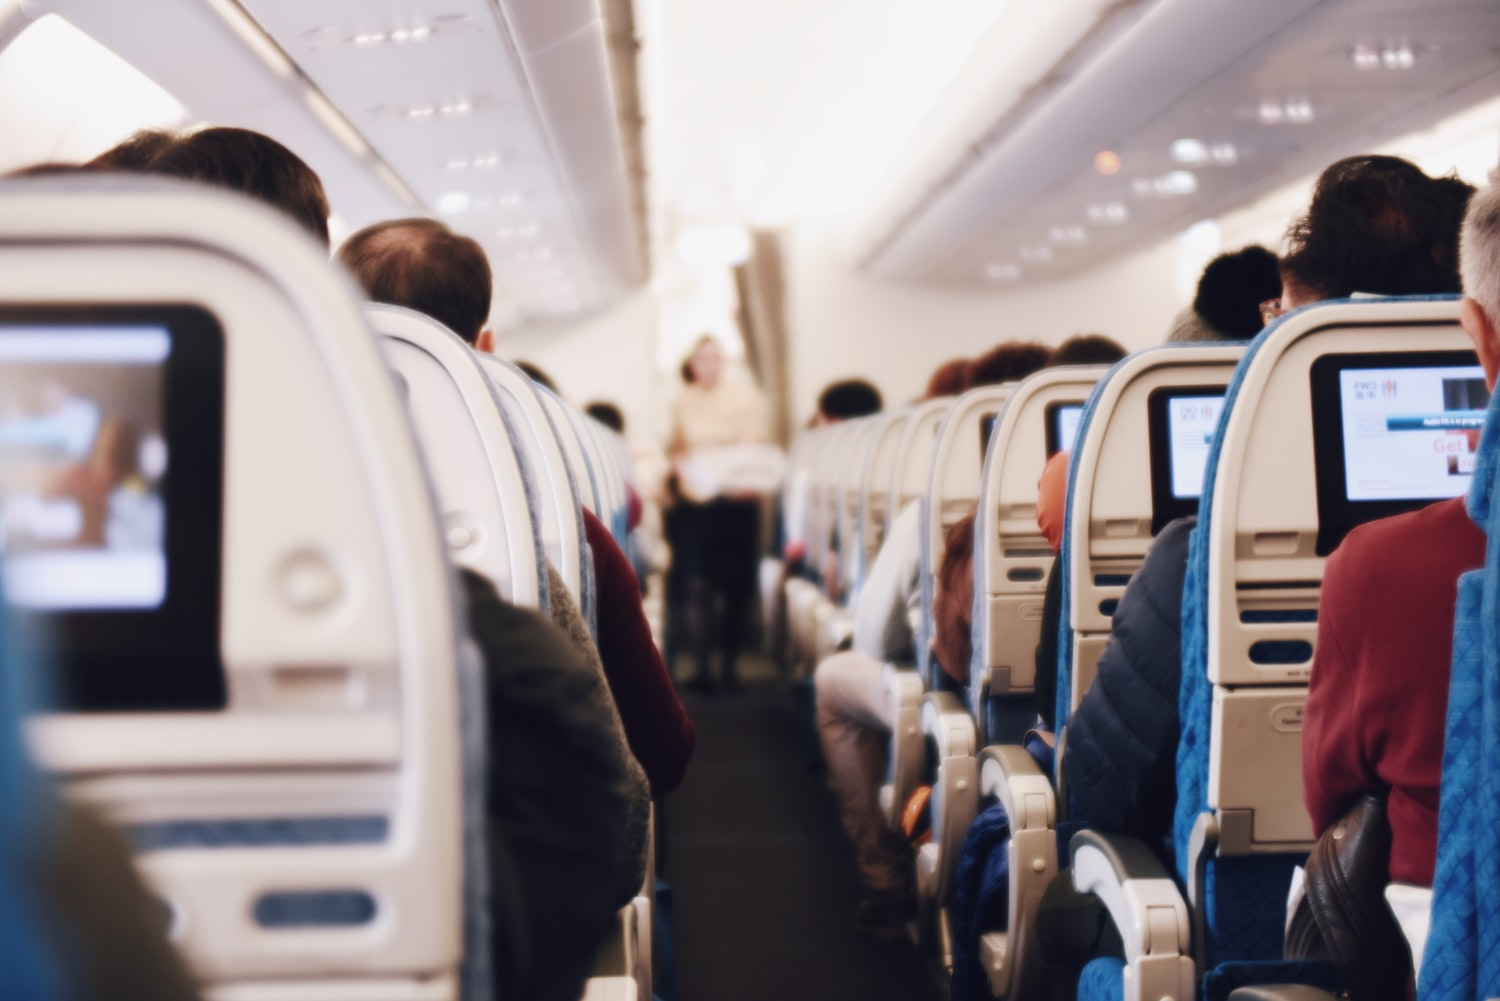 Photo of [Emerging Infectious Diseases] In-Flight Transmission of Severe Acute Respiratory Syndrome Coronavirus 2